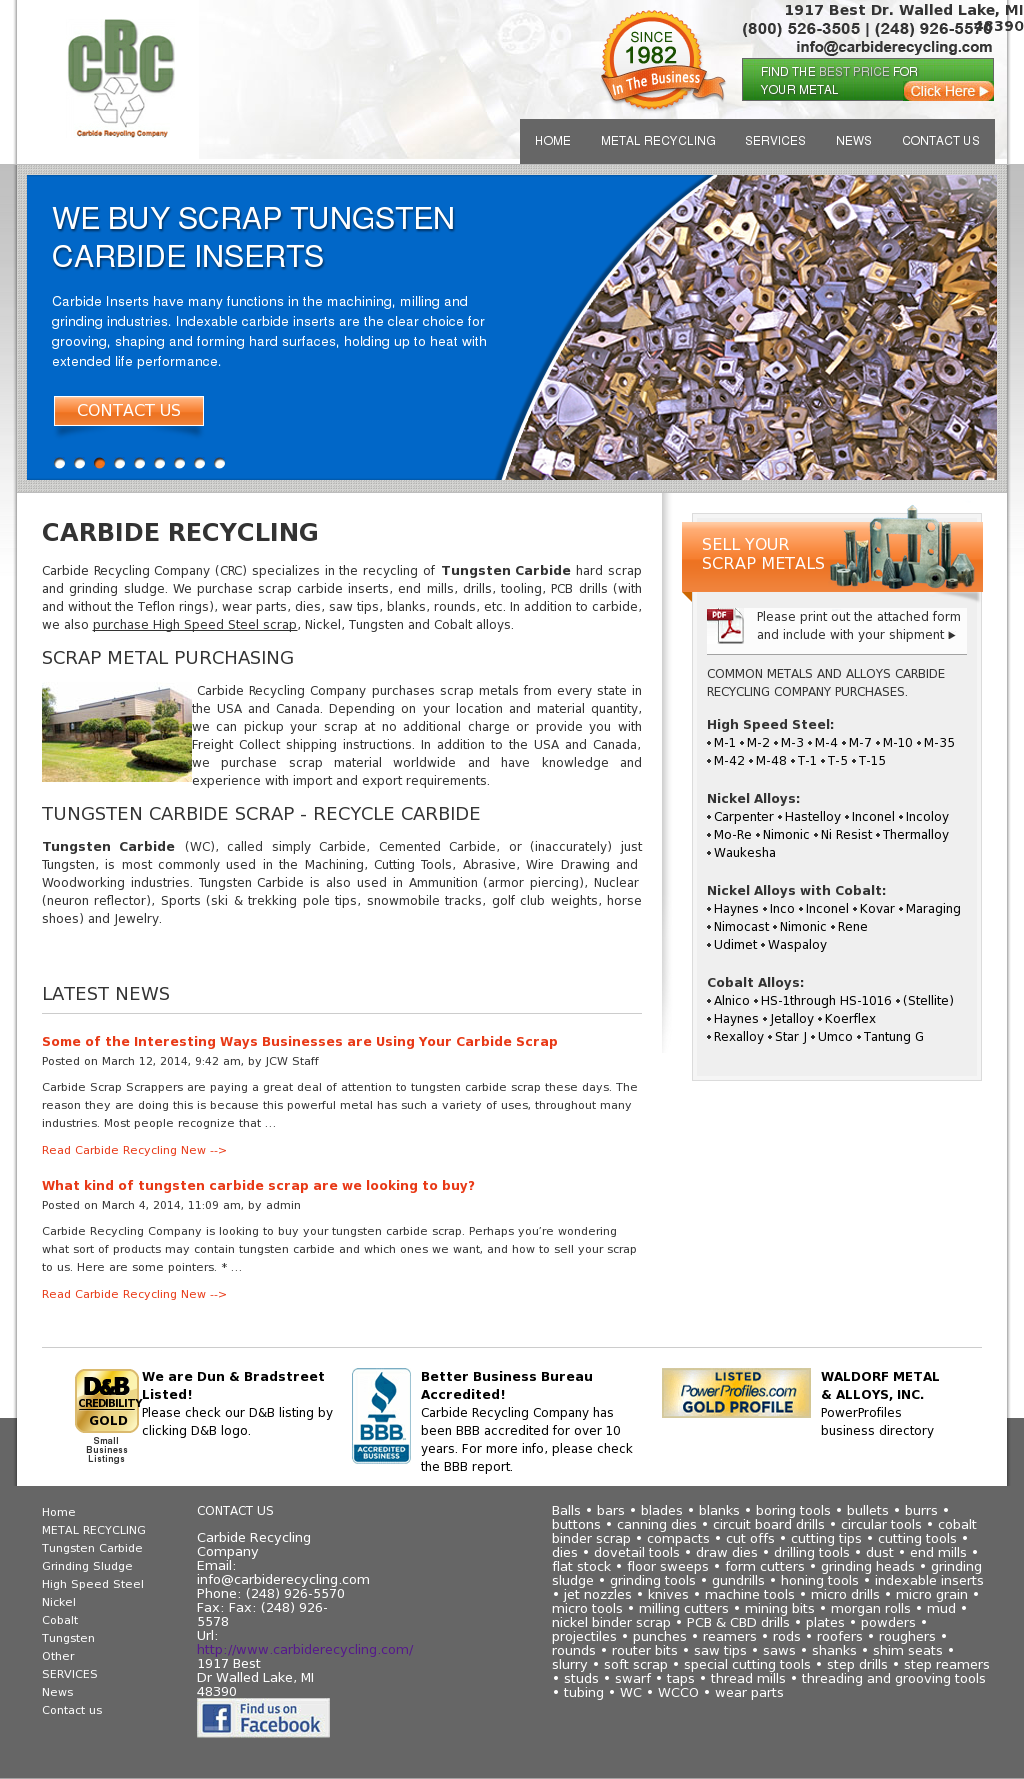 Carbide Recycling Company Competitors, Revenue and Employees - Owler